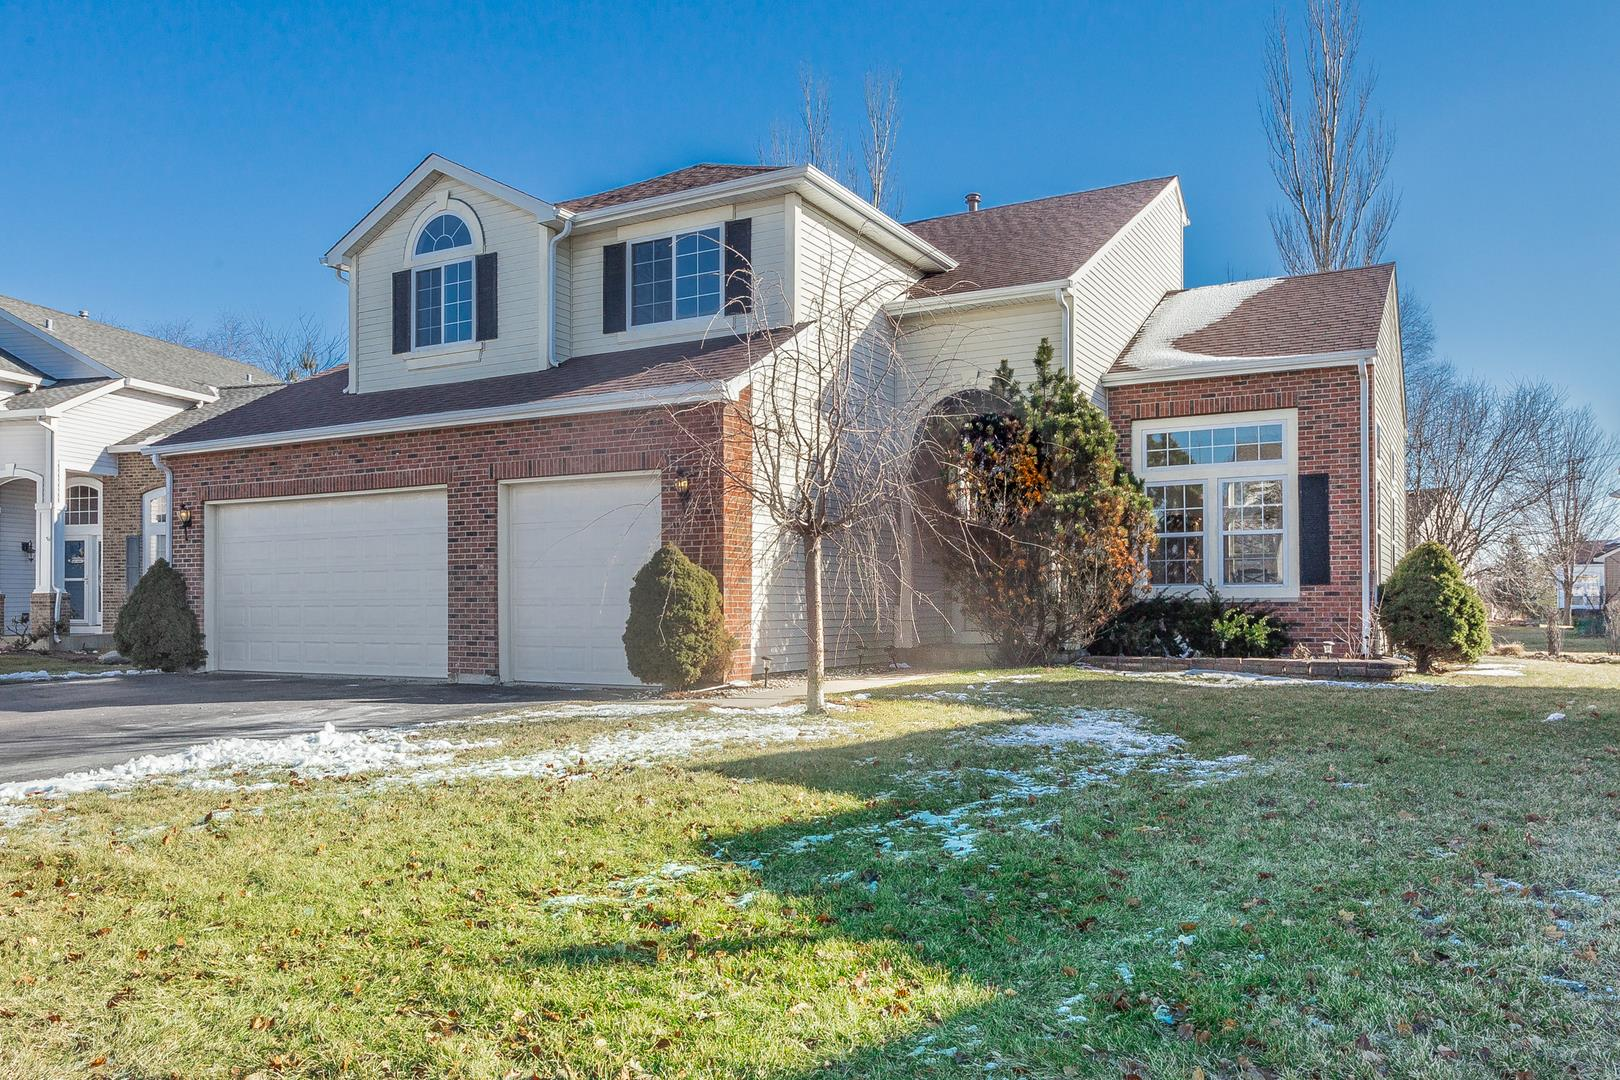 200 ELLIS Road, Lake In The Hills, IL 60156 - #: 10613972